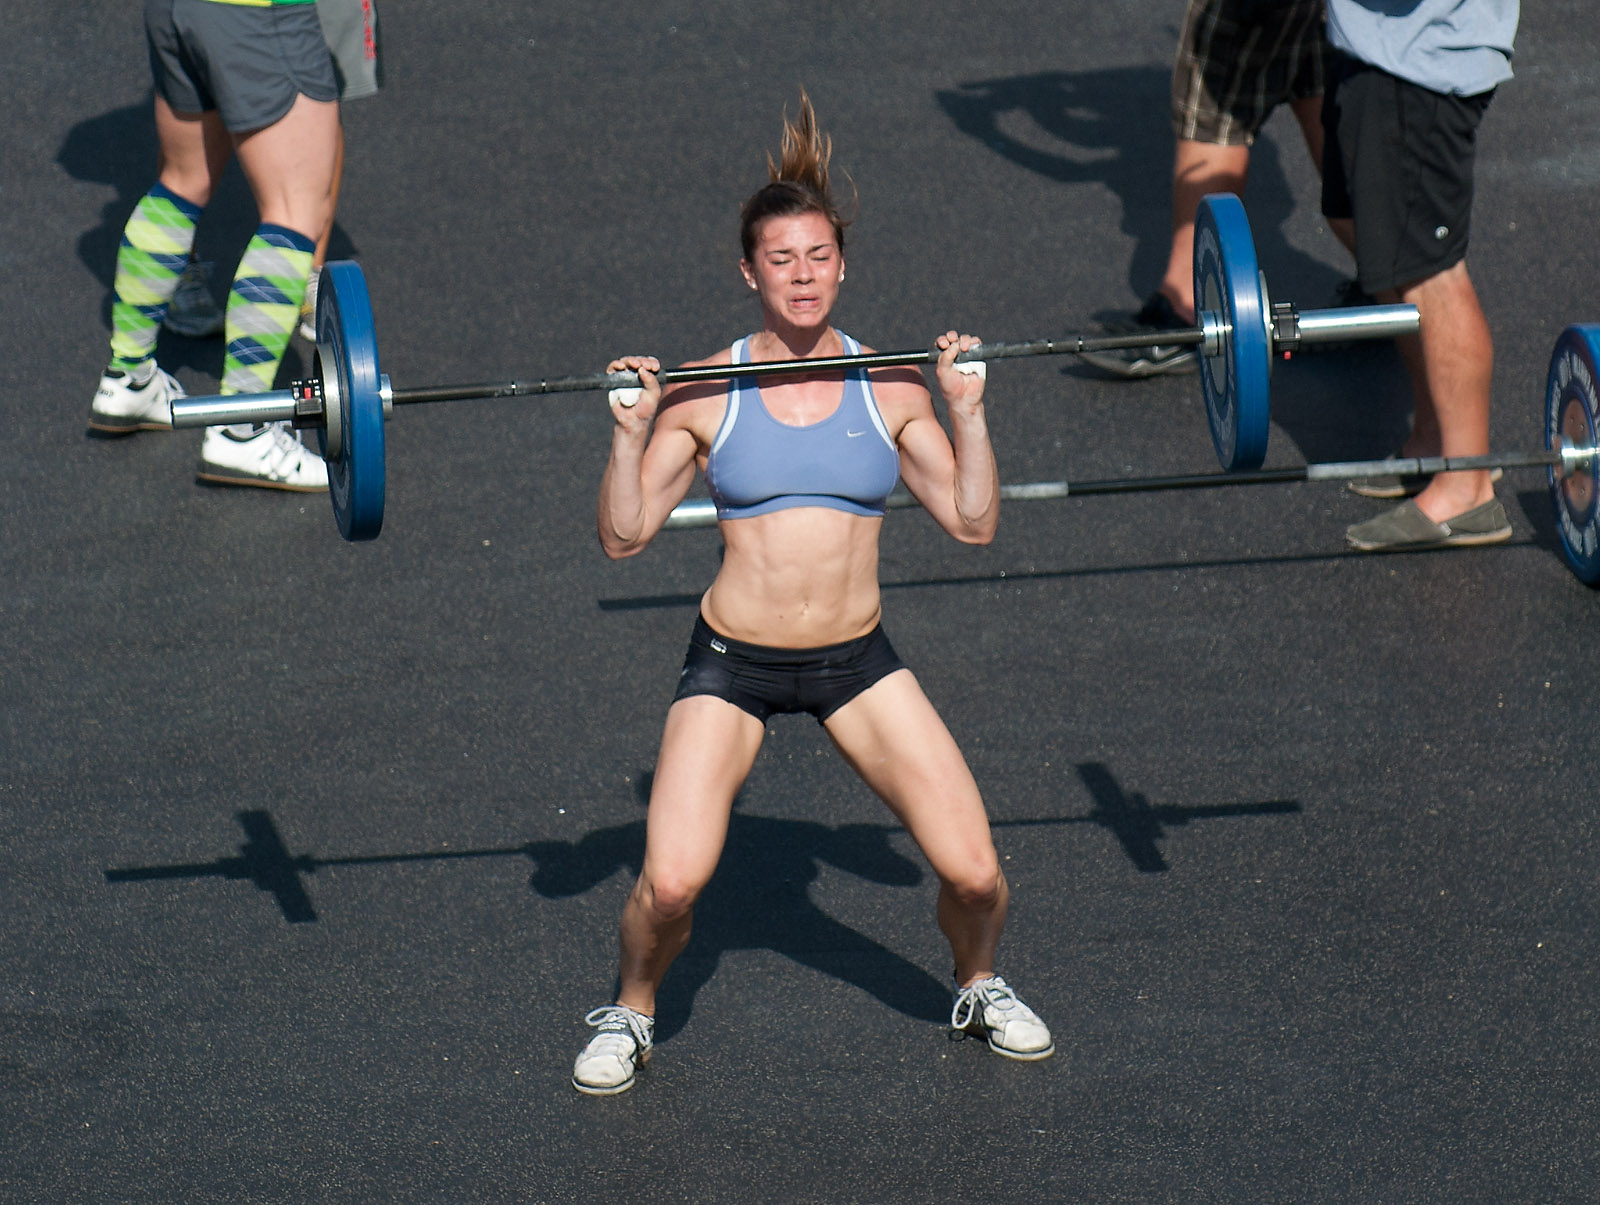 Julie Foucher 2010 CrossFit Games